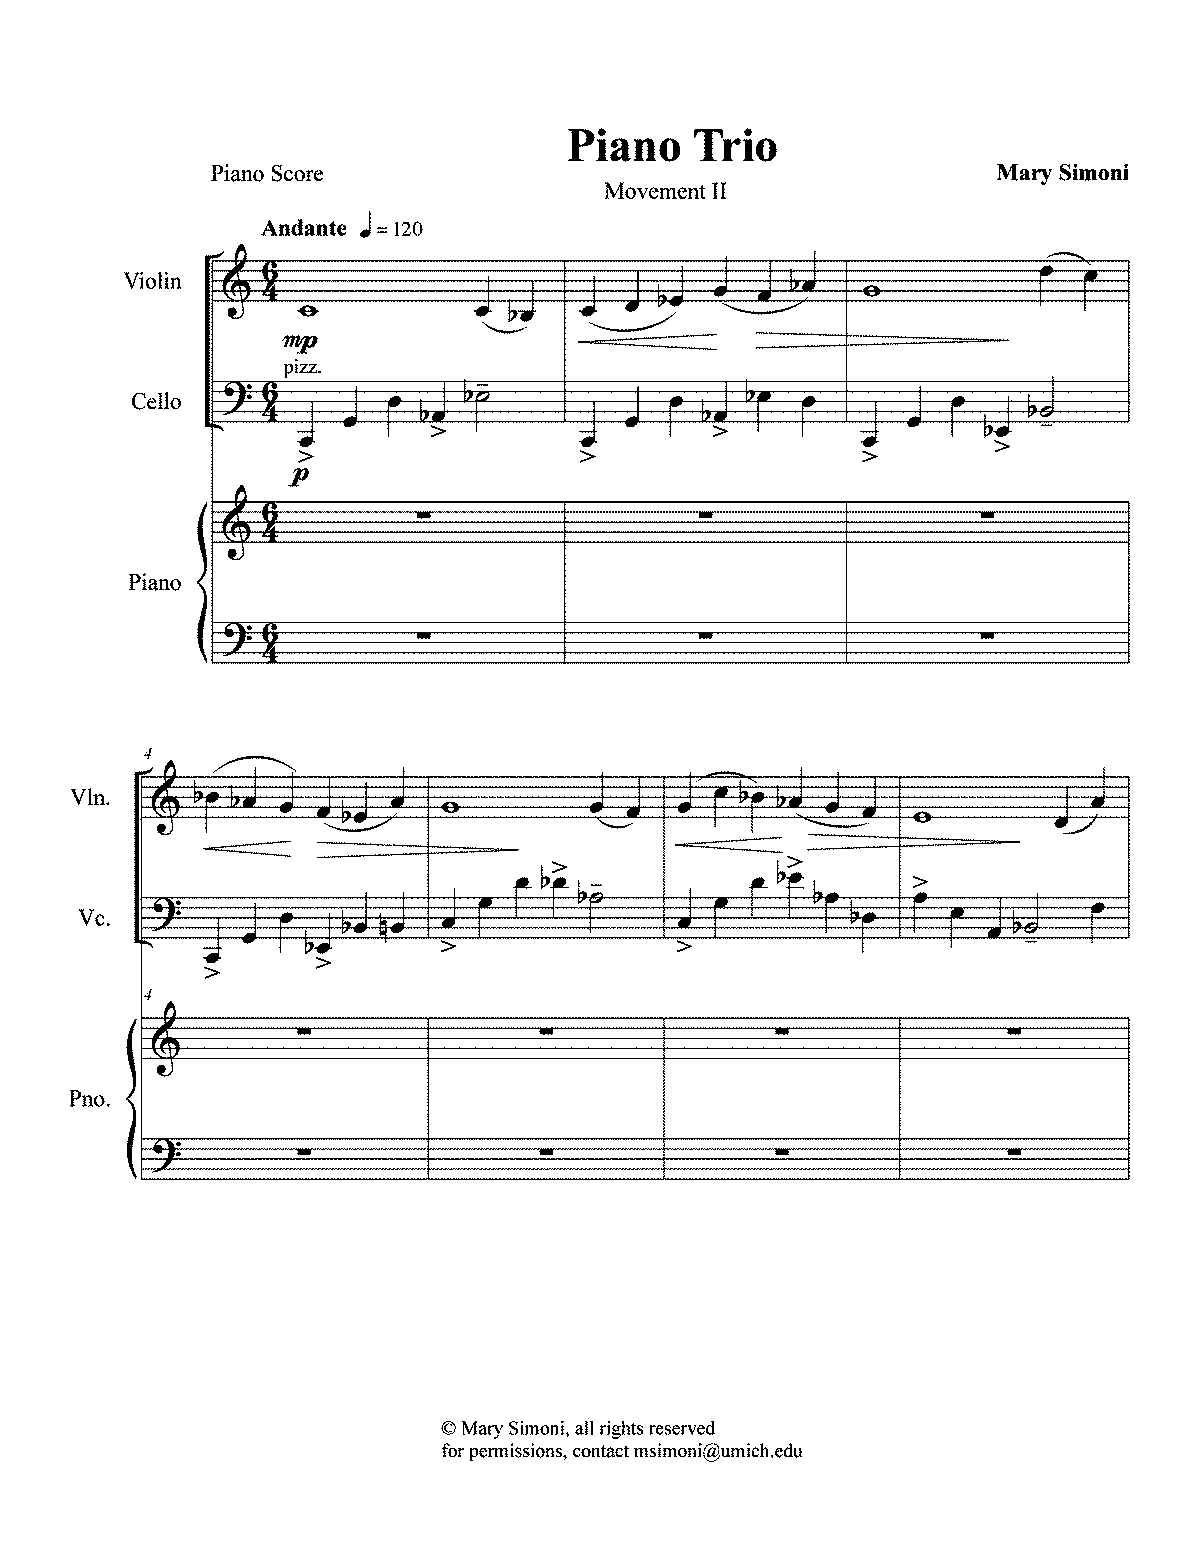 PMLP232569-PianoTrio Second Movement-FullScore.pdf